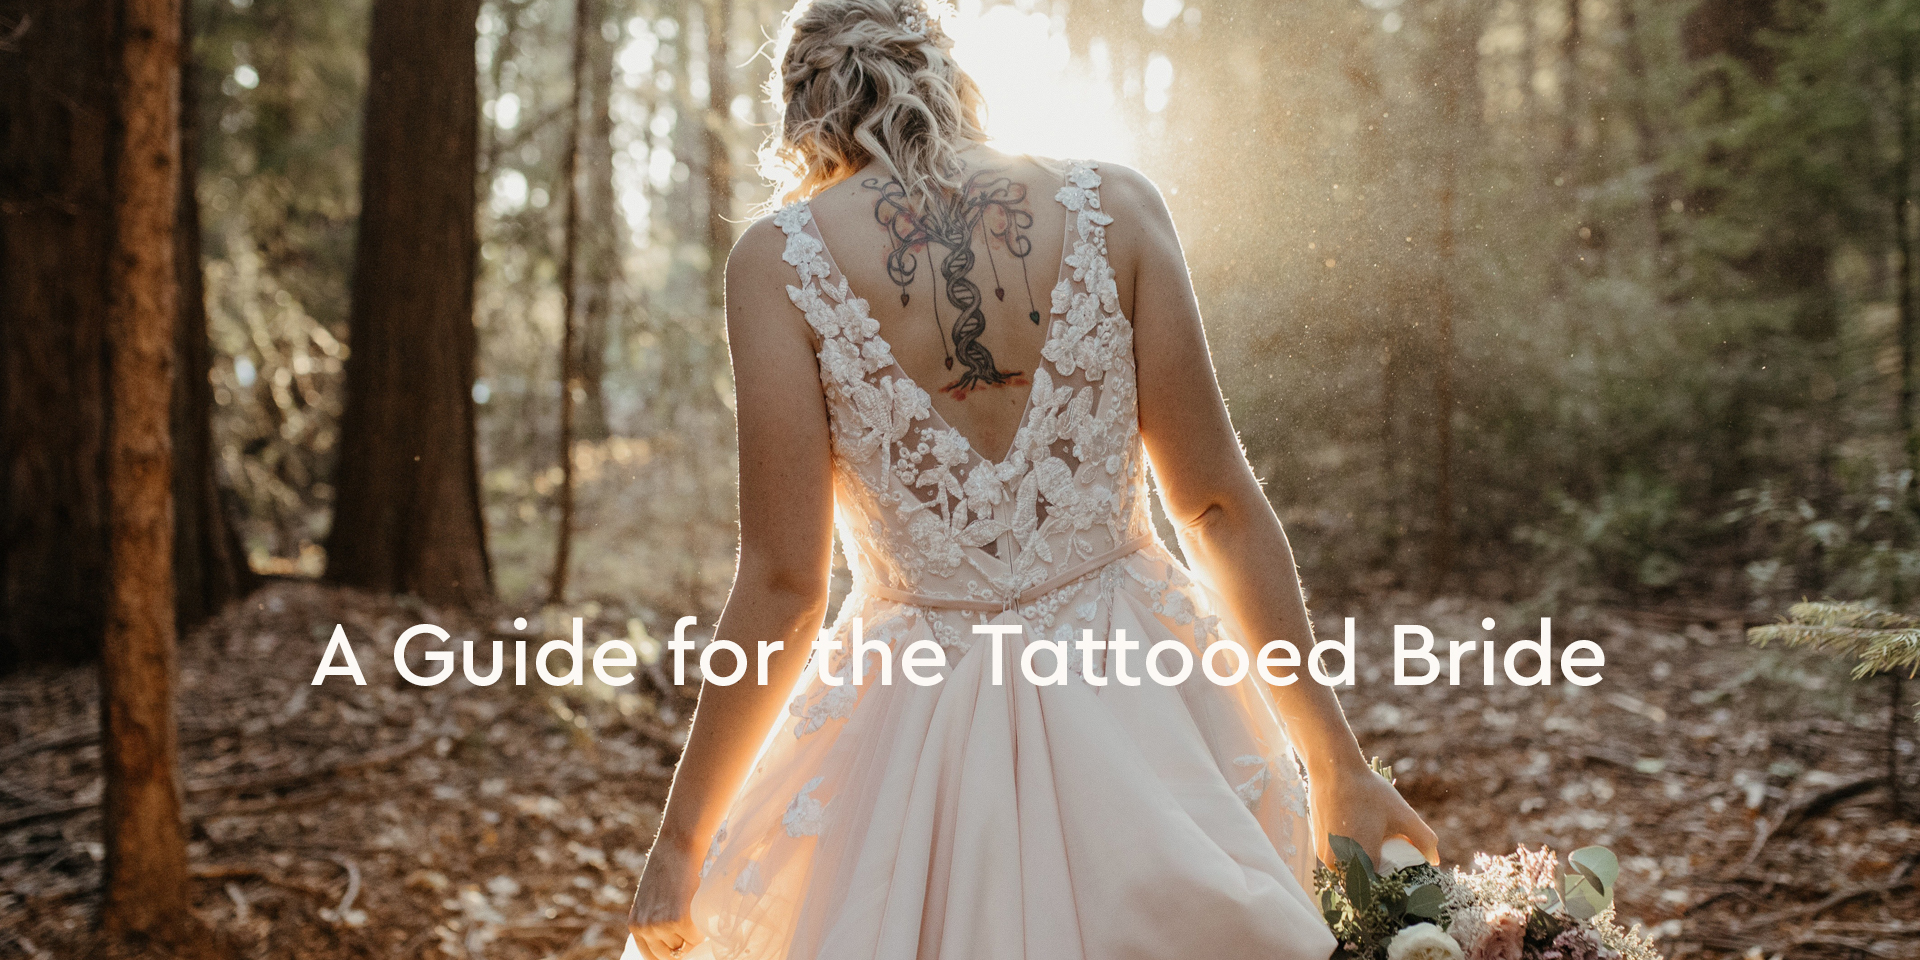 Anomalie bride wearing a laced, low-back dress that flaunts her back tattoo.